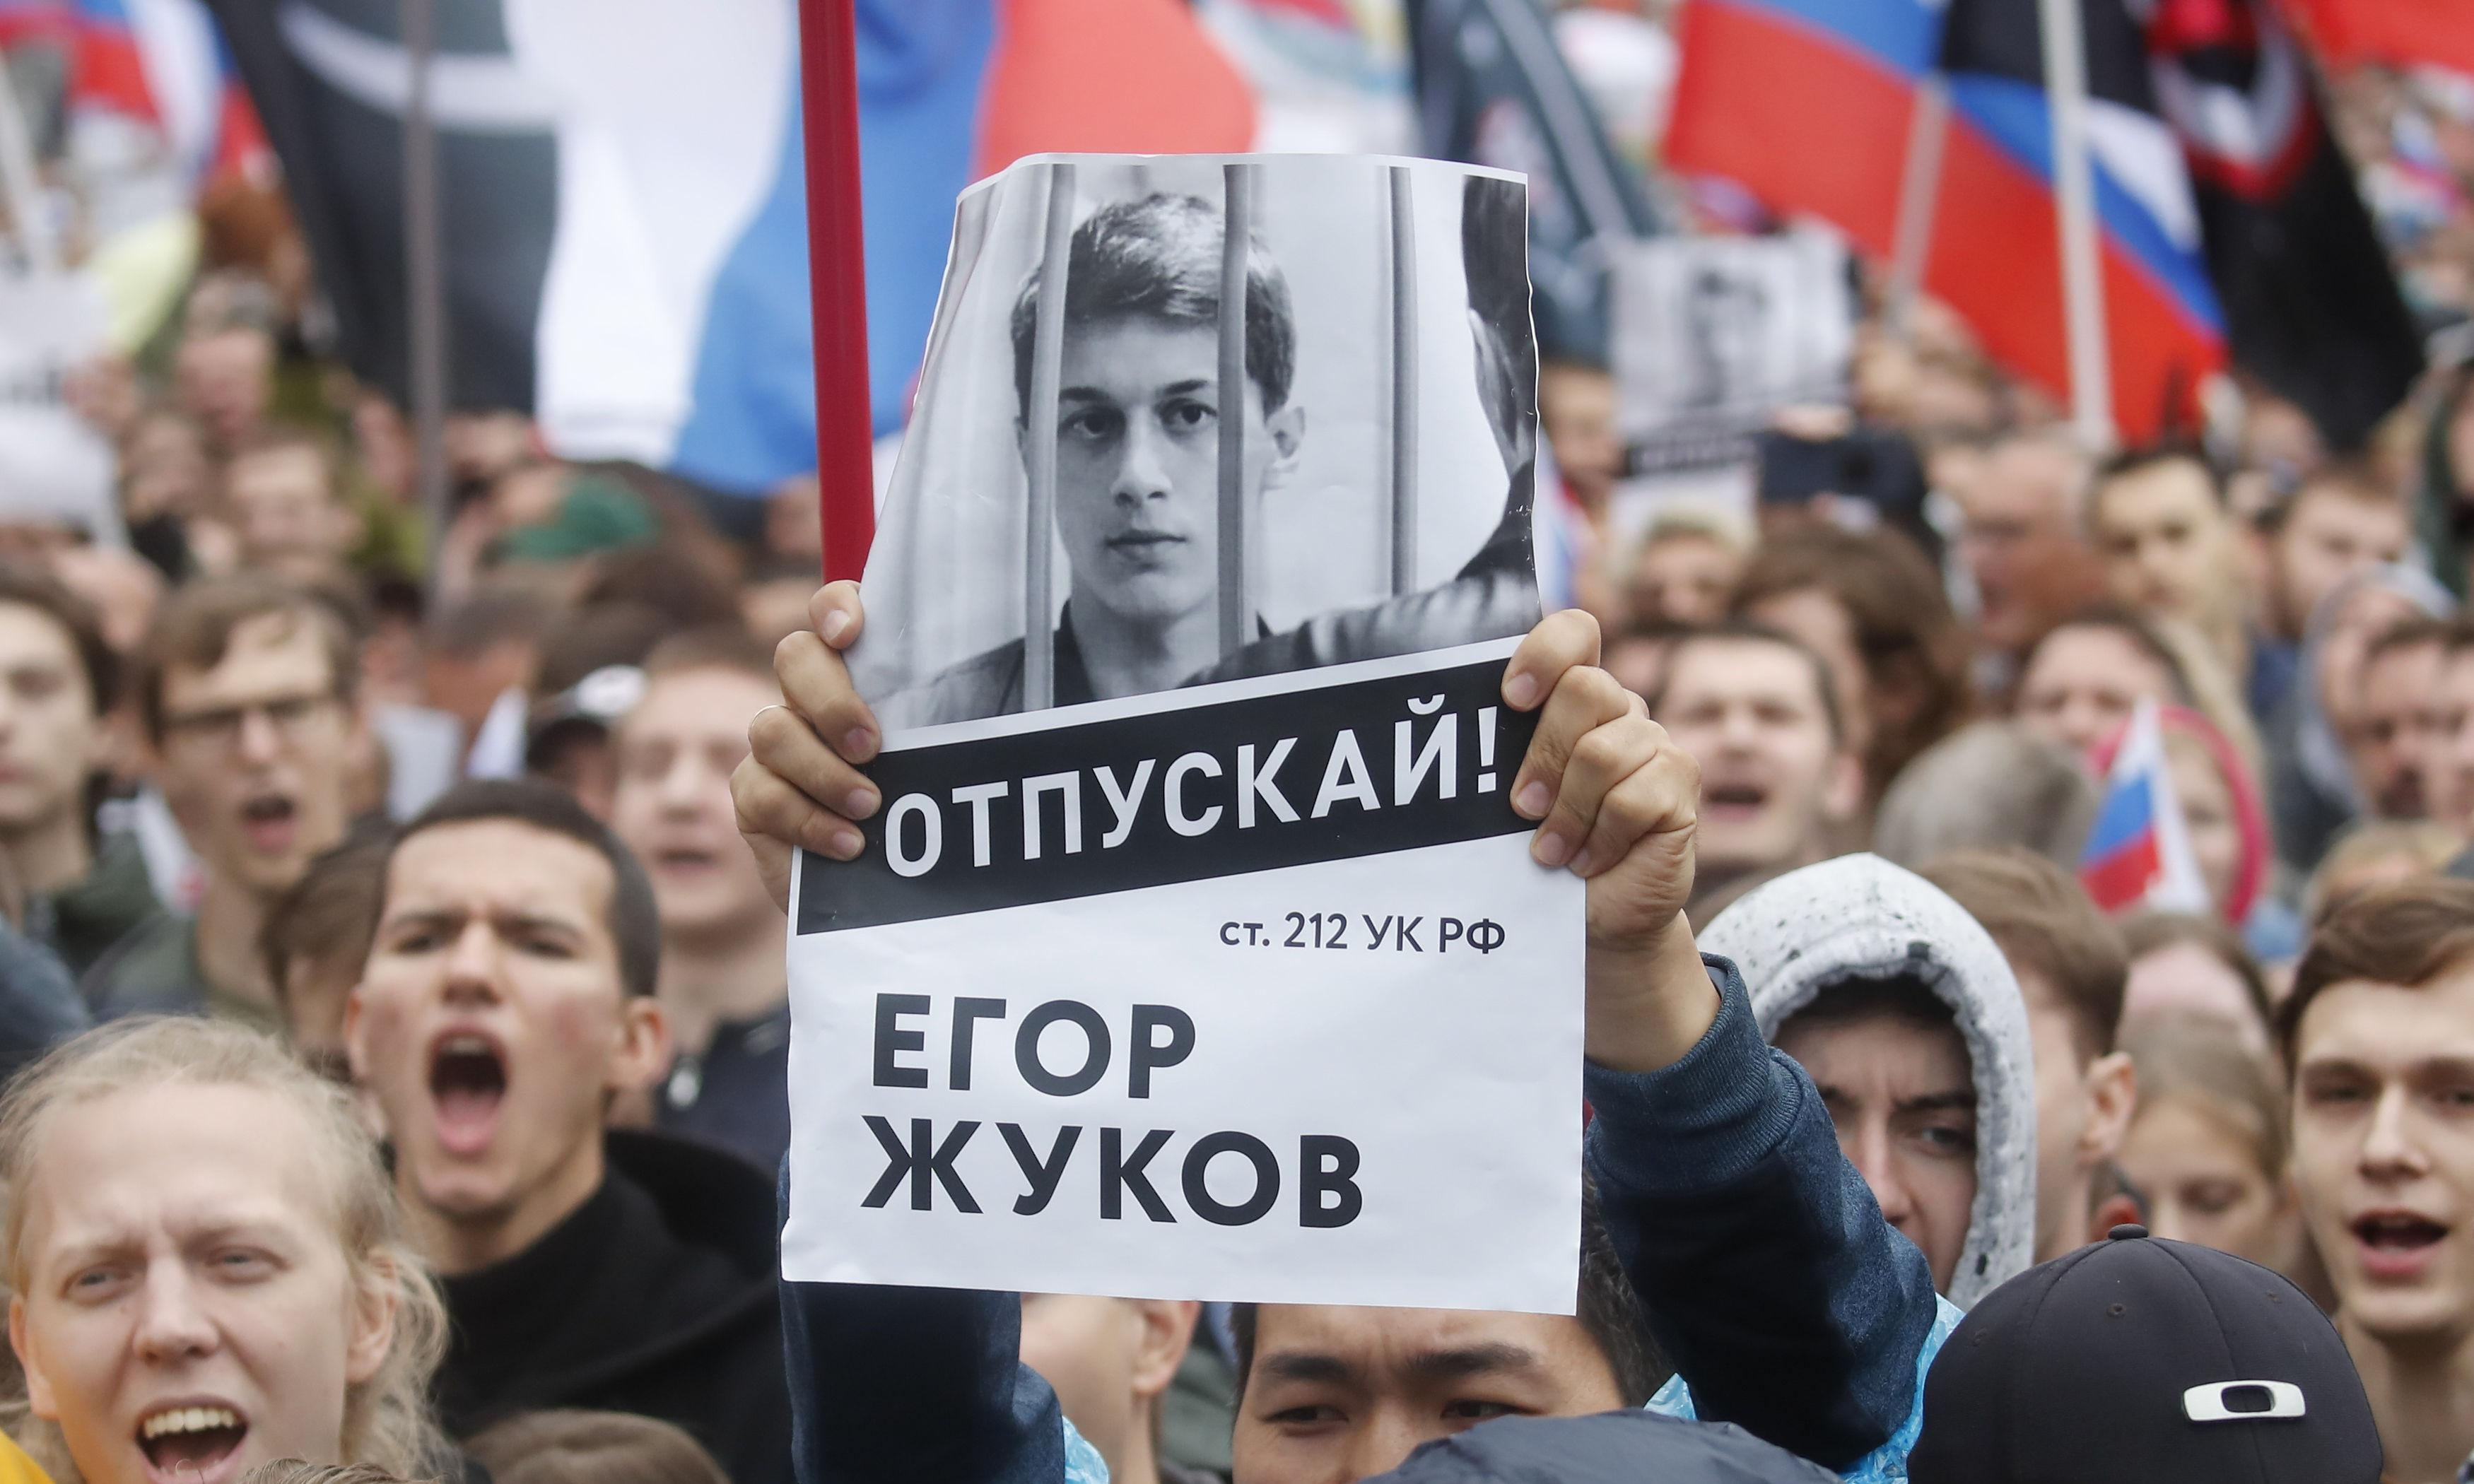 Putin's 20 years in power producing new generation of protesters